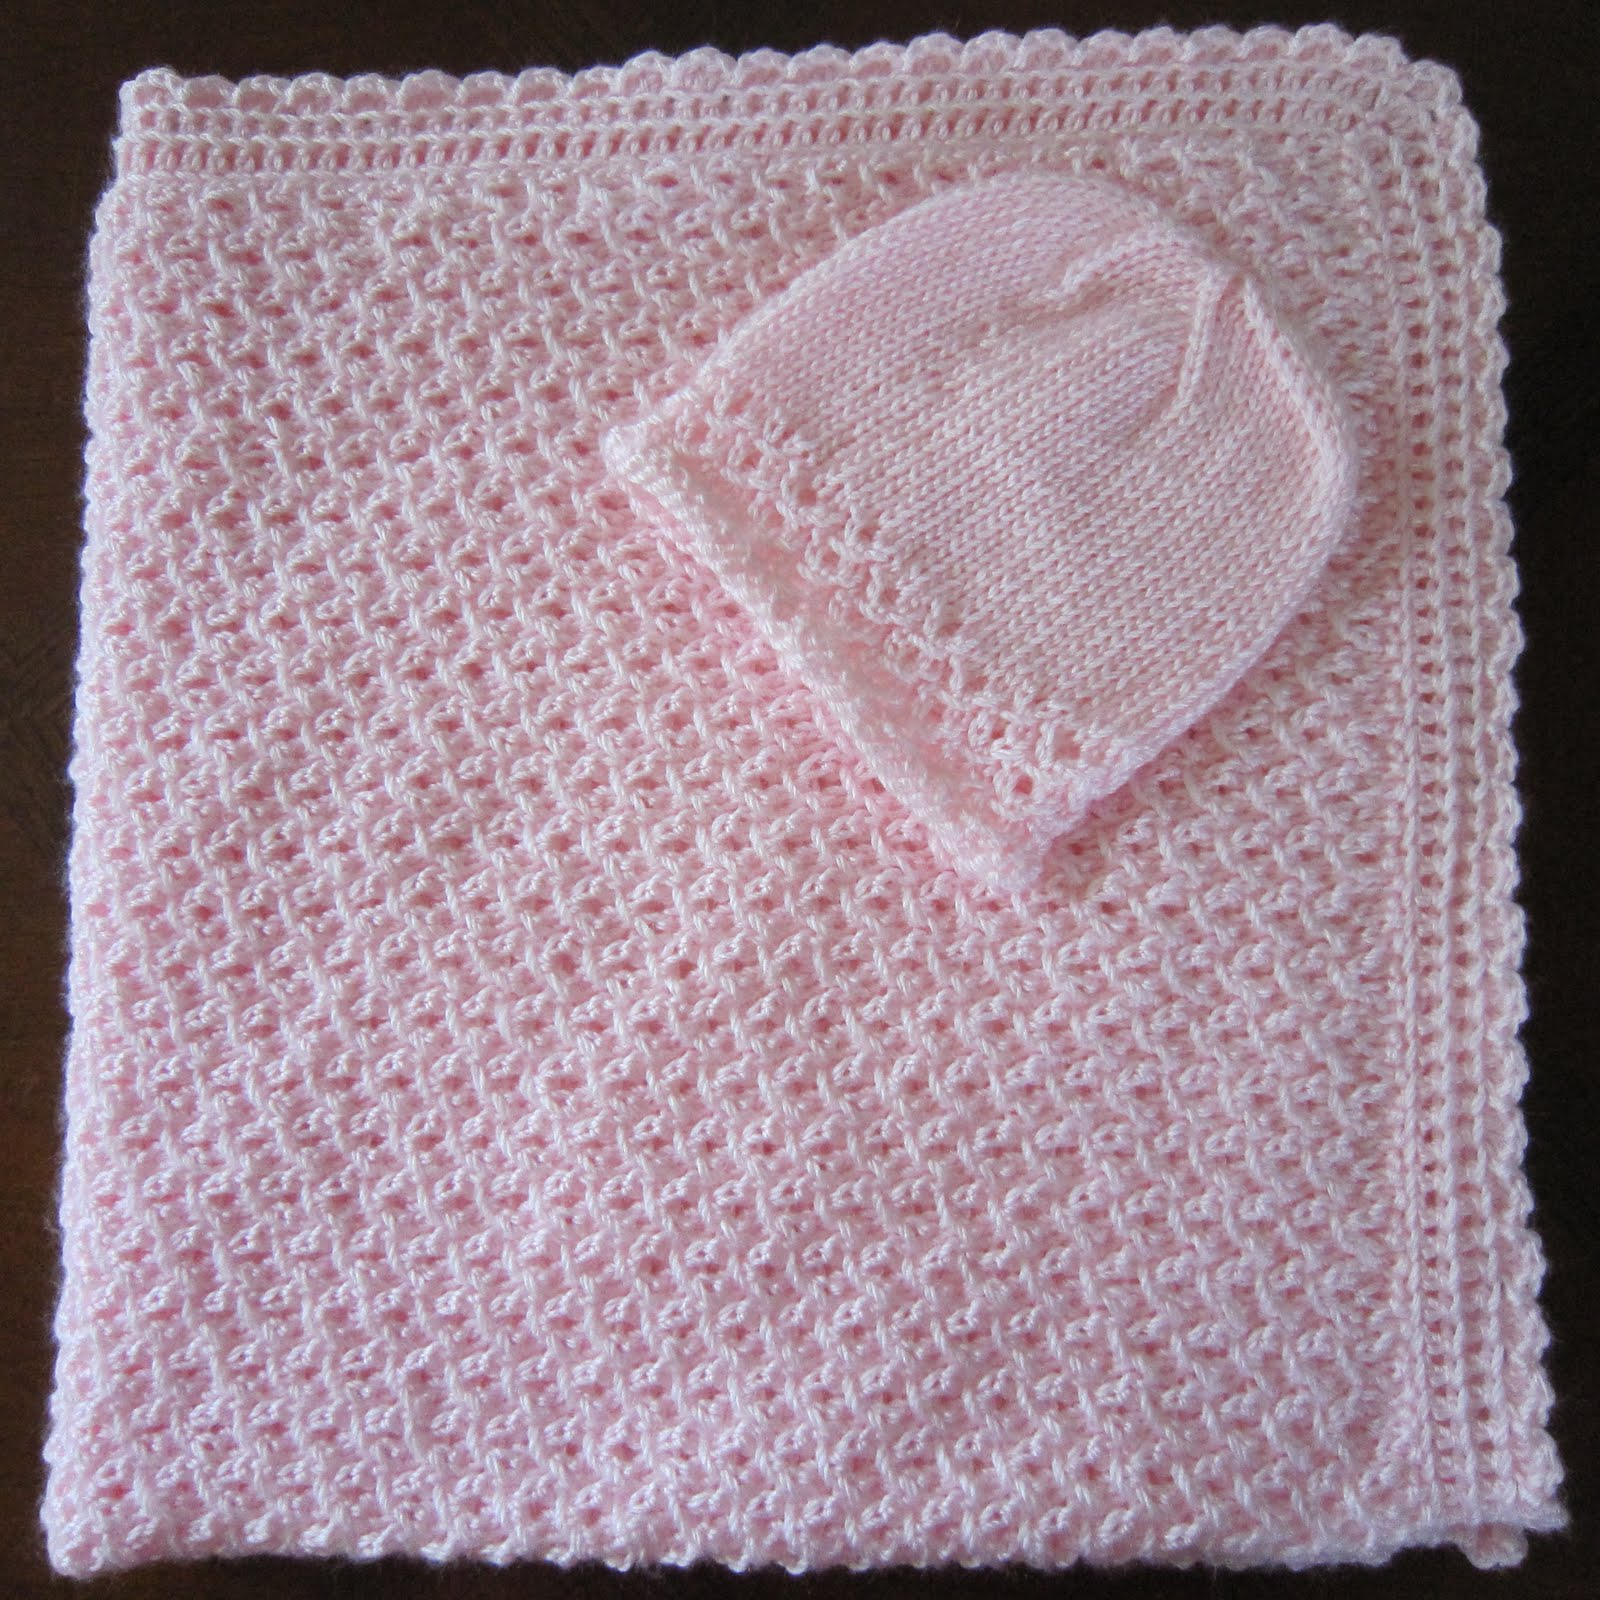 Free Knitting Patterns For Baby Blankets : Sea Trail Grandmas: Free KNIT PATTERN PREEMIE HAT AND ...